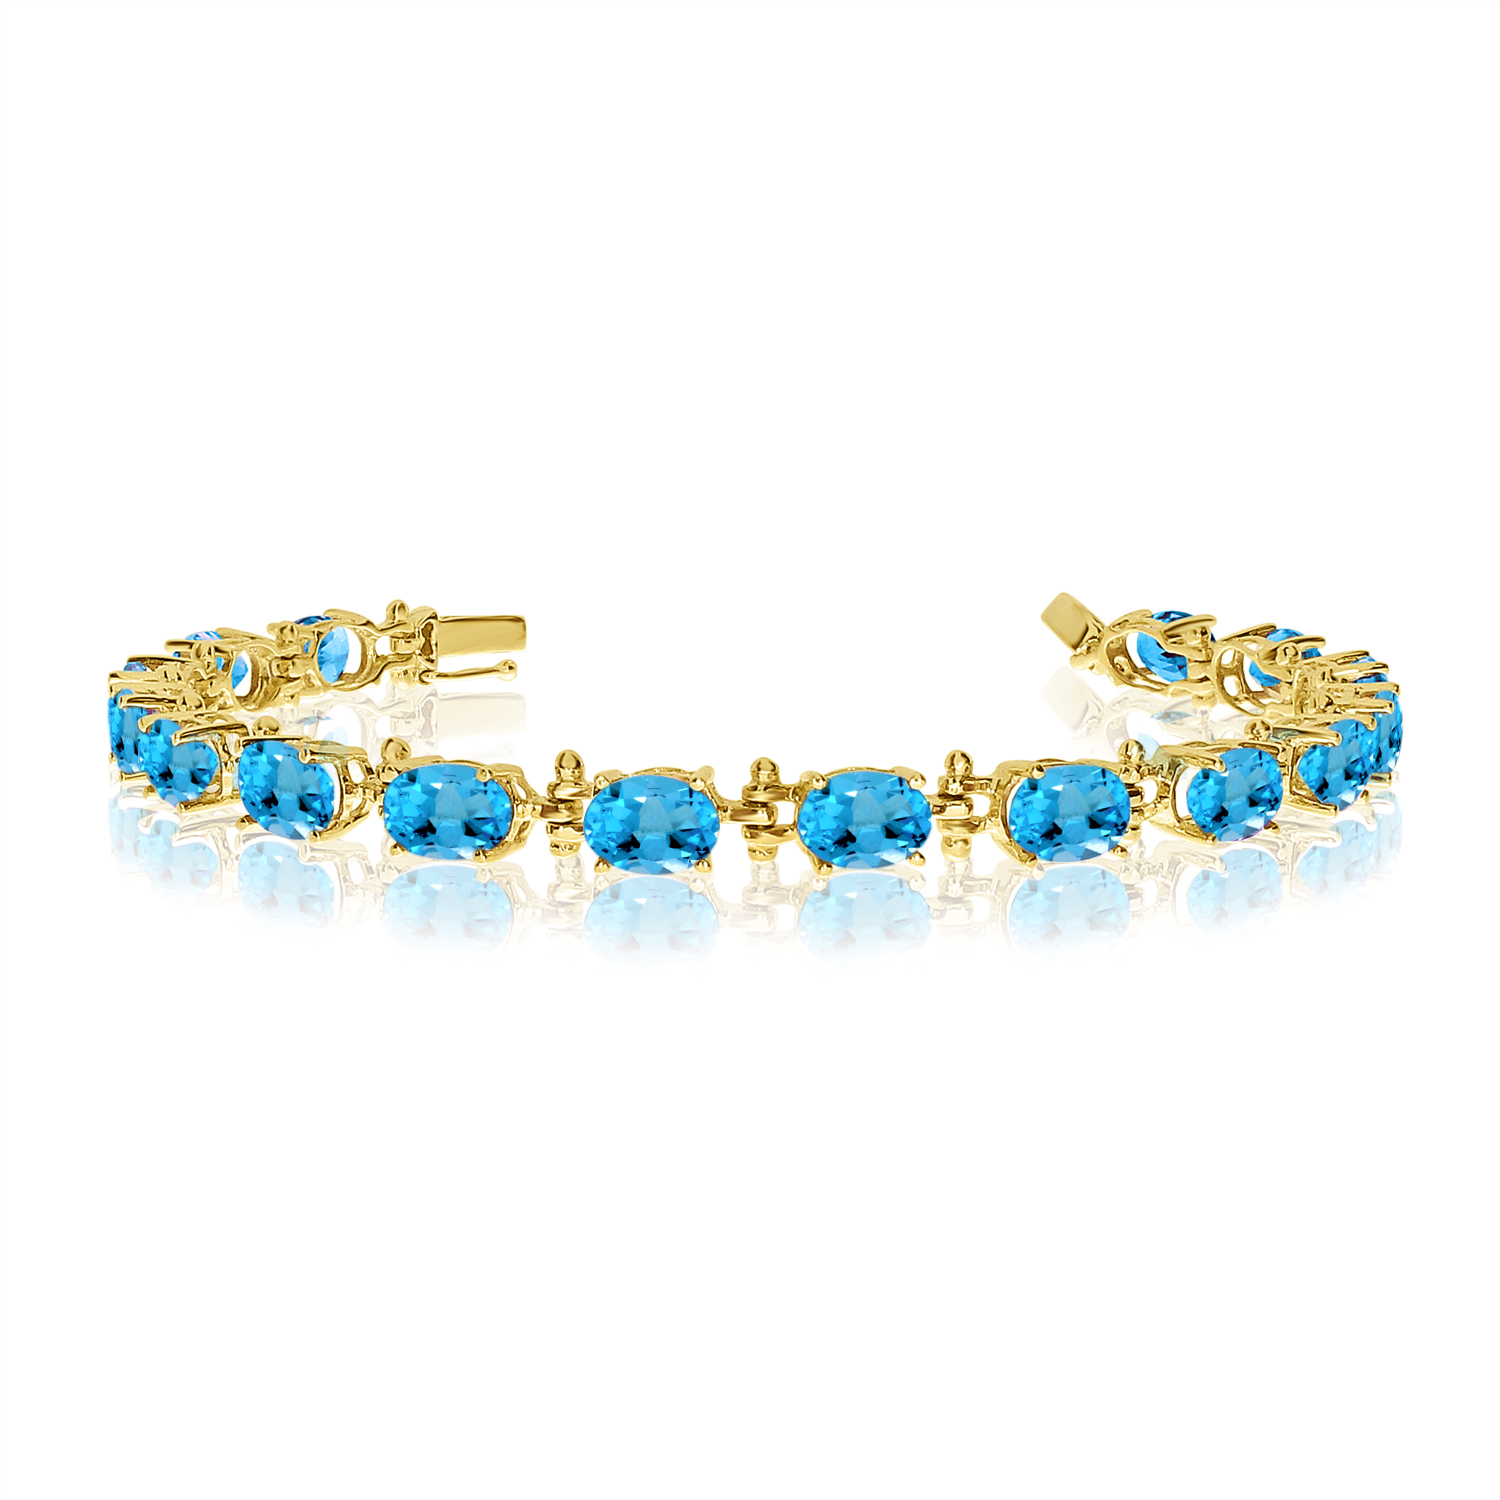 14K Yellow Gold Oval Blue Topaz Tennis Bracelet by